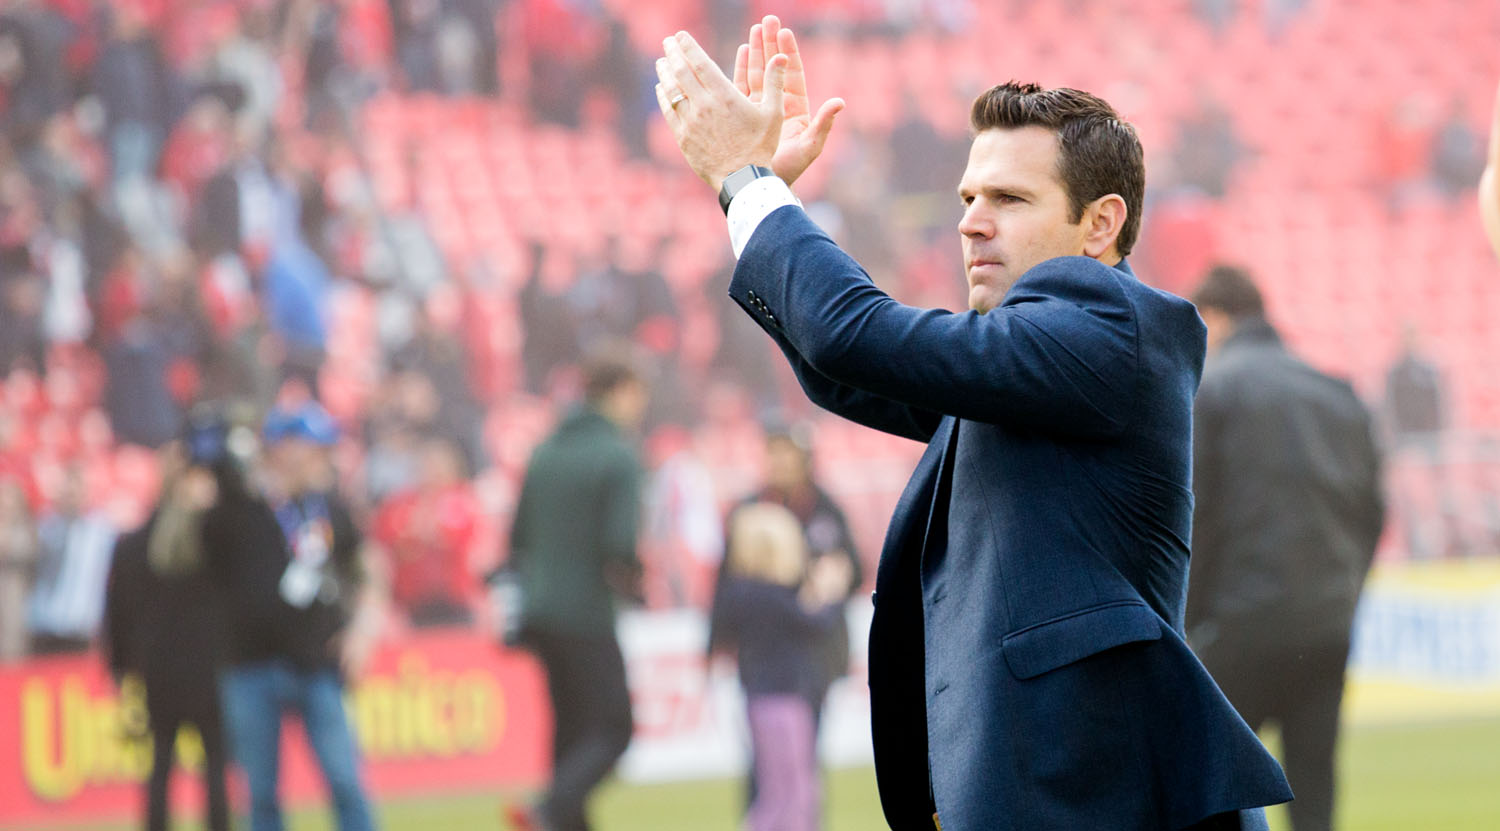 Greg Vanney clapping towards the south end fans after a vicotry over Minnesota United at BMO Field.Image by Dennis Marciniak of denMAR Media.